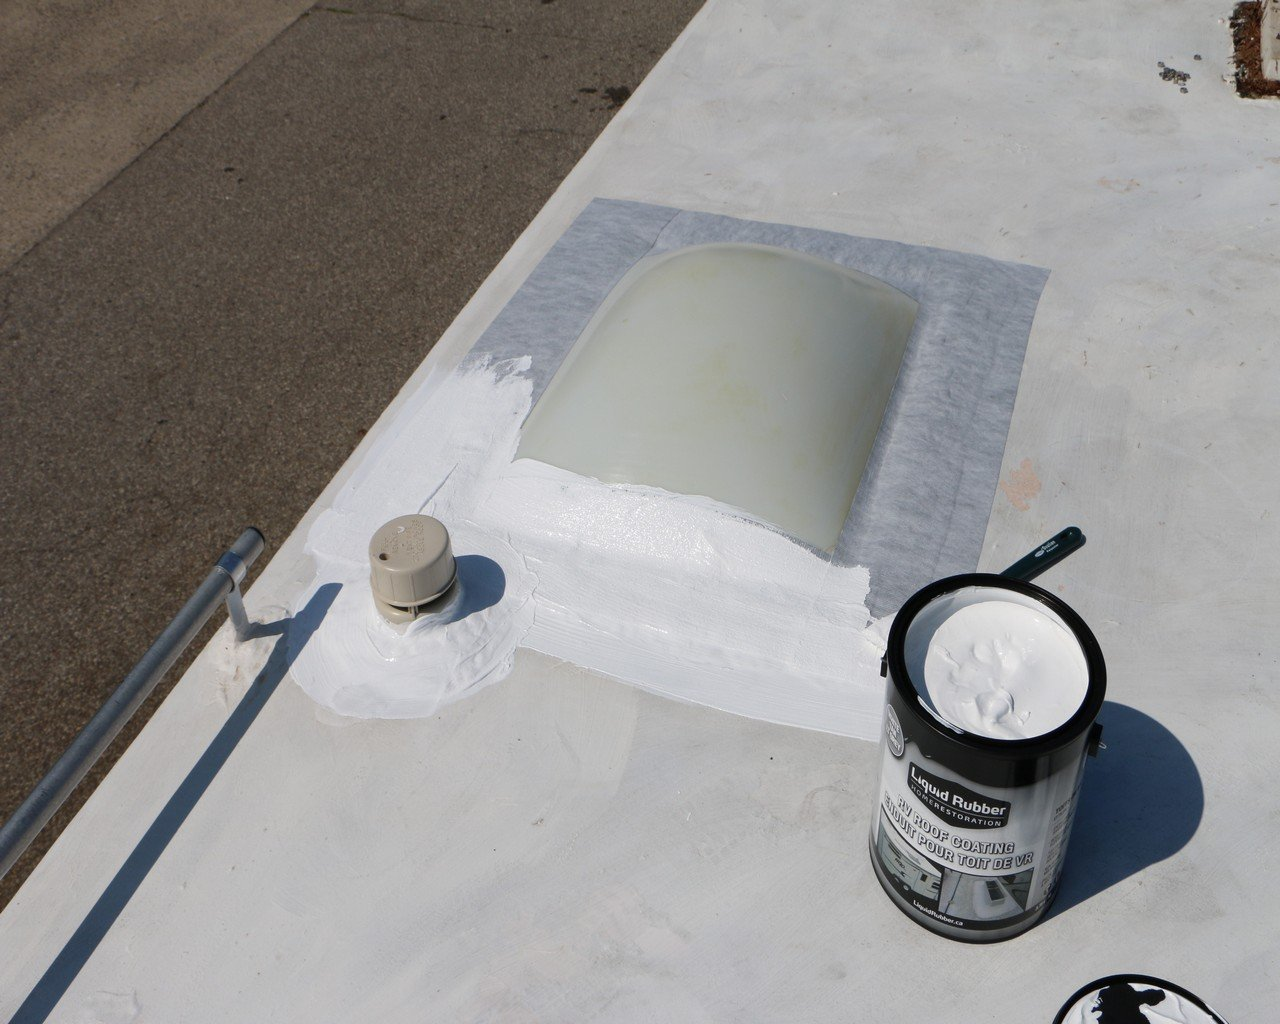 Liquid Rubber Seam Tape - Fix Leaks - For Repairs and Restoration - Easy to Use - Polyester Top to Accept Liquid Rubber Coatings - RV Roofs, Metal Roofs, Gutters... - TOP SELLER - 4'' x 50' Roll by Liquid Rubber USA (Image #2)